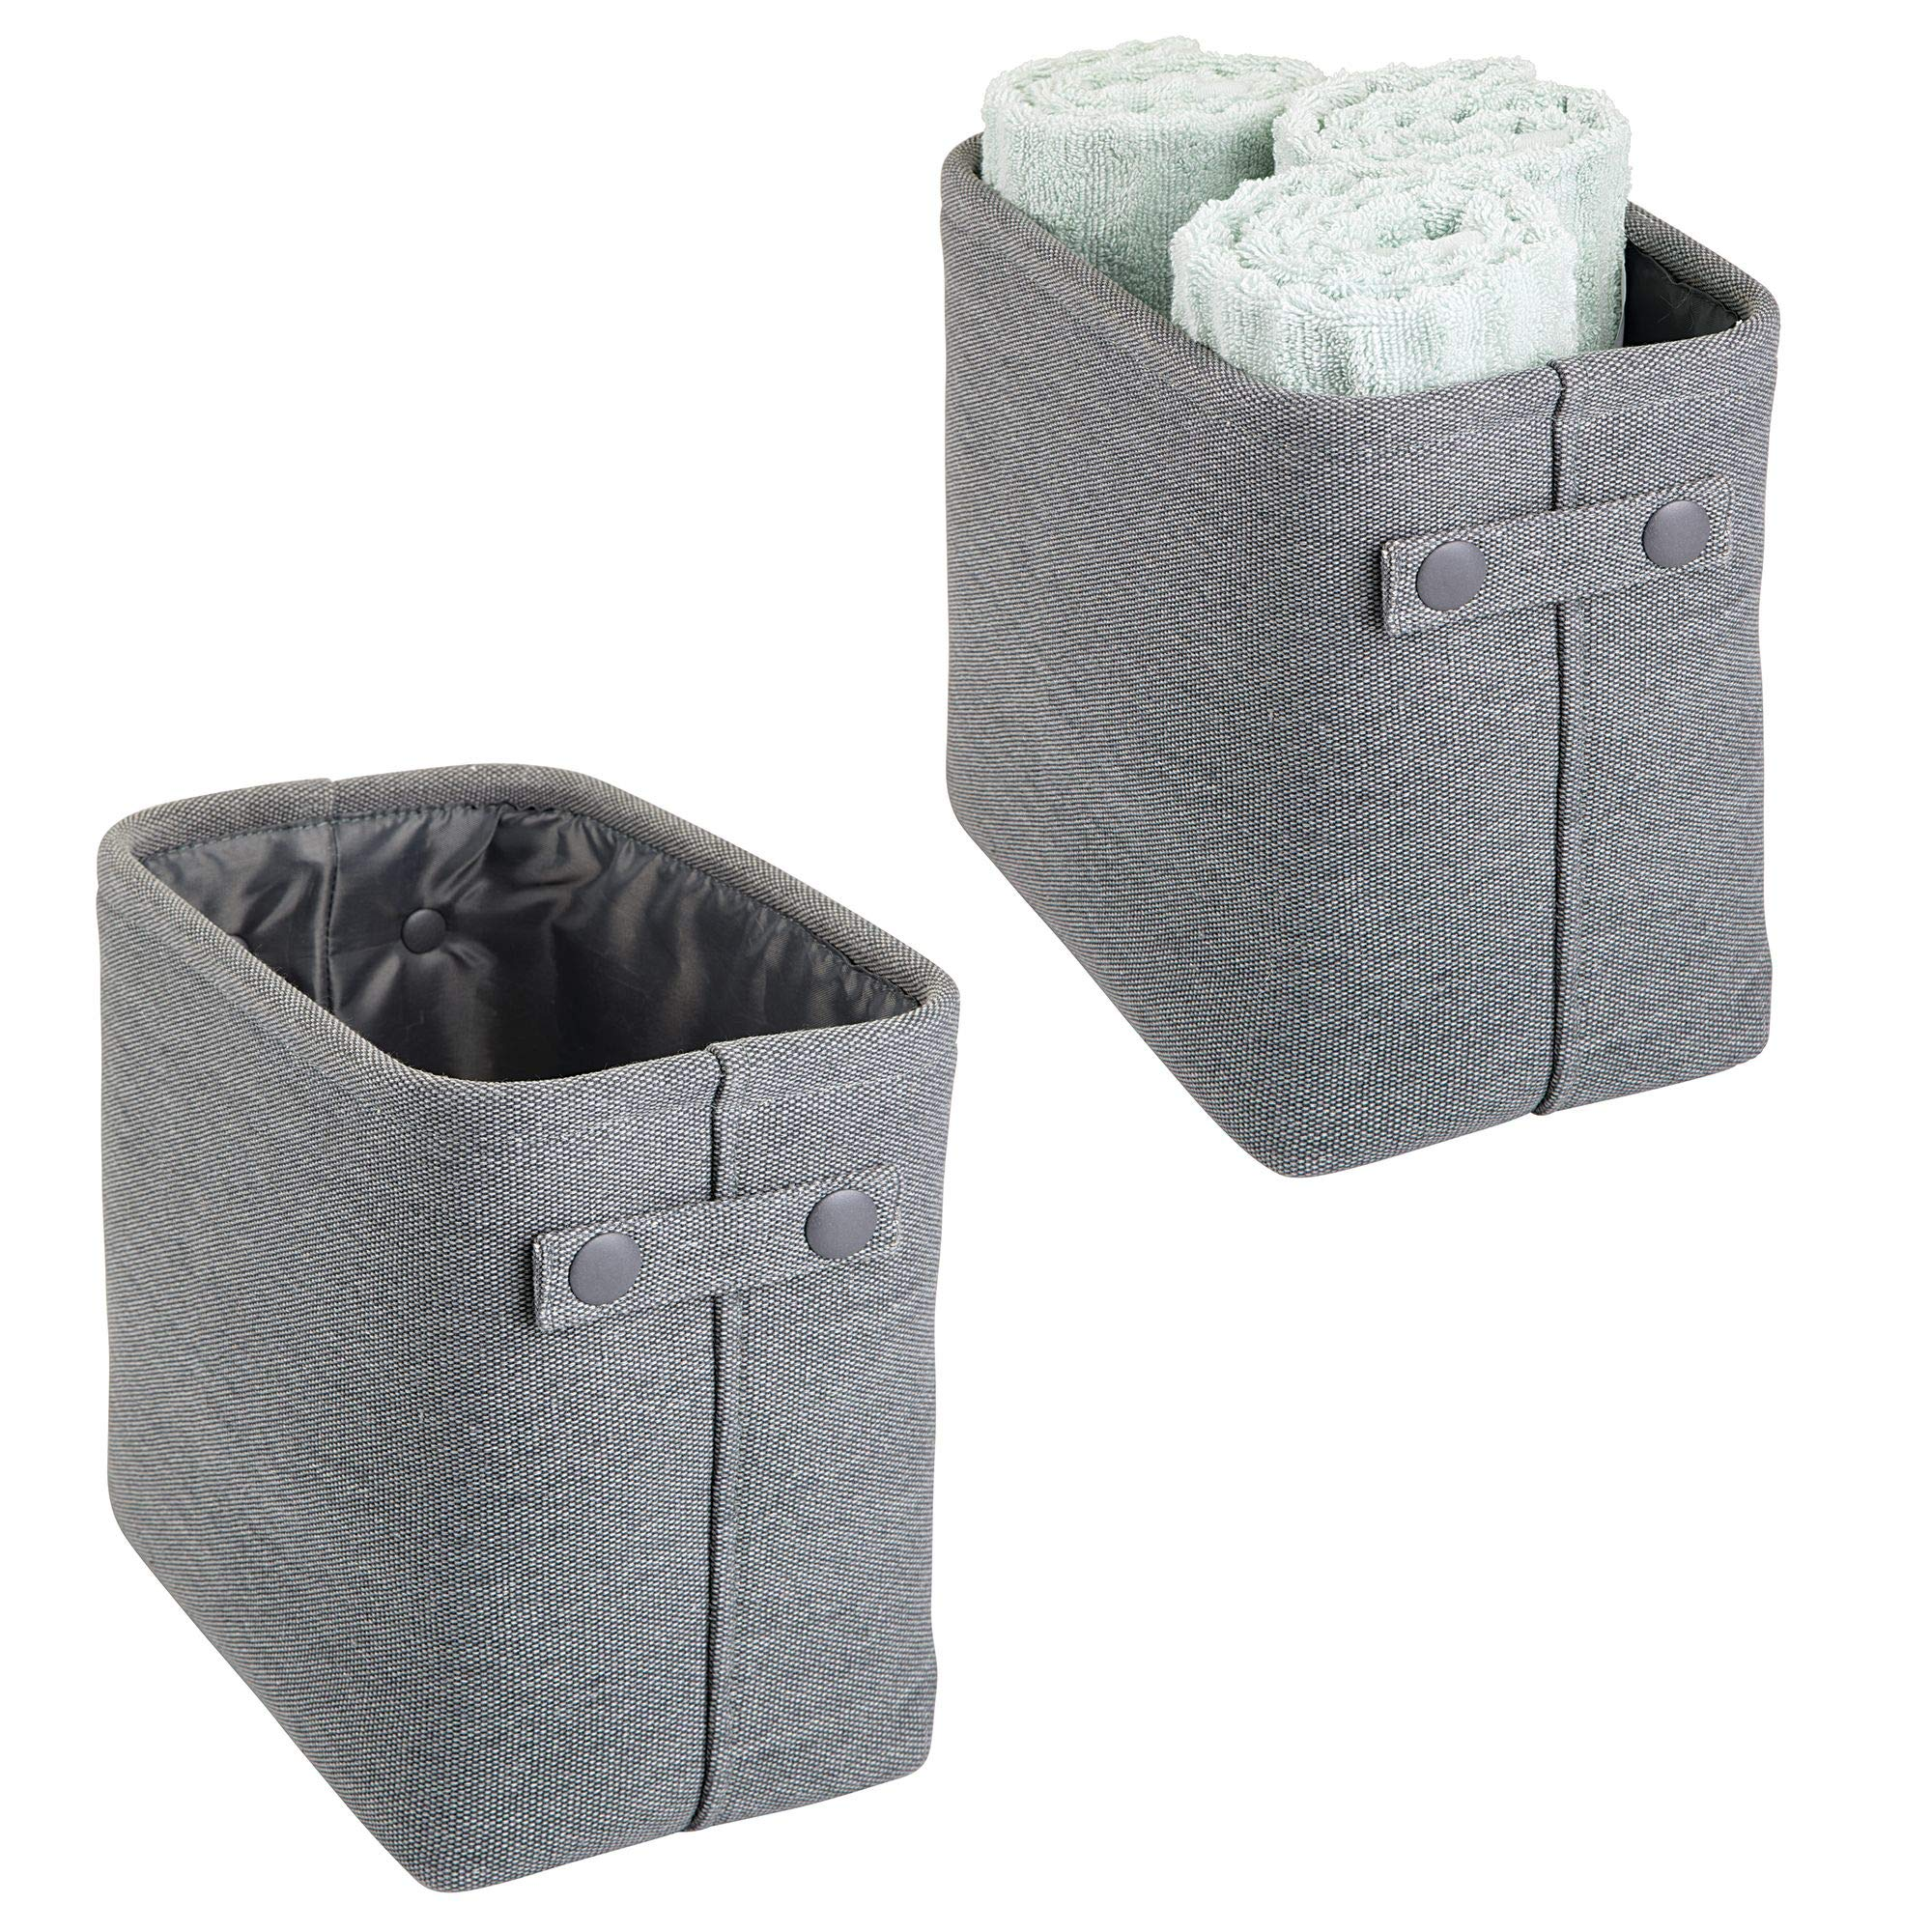 mDesign Soft Cotton Fabric Bathroom Storage Bin Basket with Coated Interior and Attached Handles - Organizer for Closets, Cabinets, Shelves - Pack of 2, Rectangular with Textured Weave, Charcoal